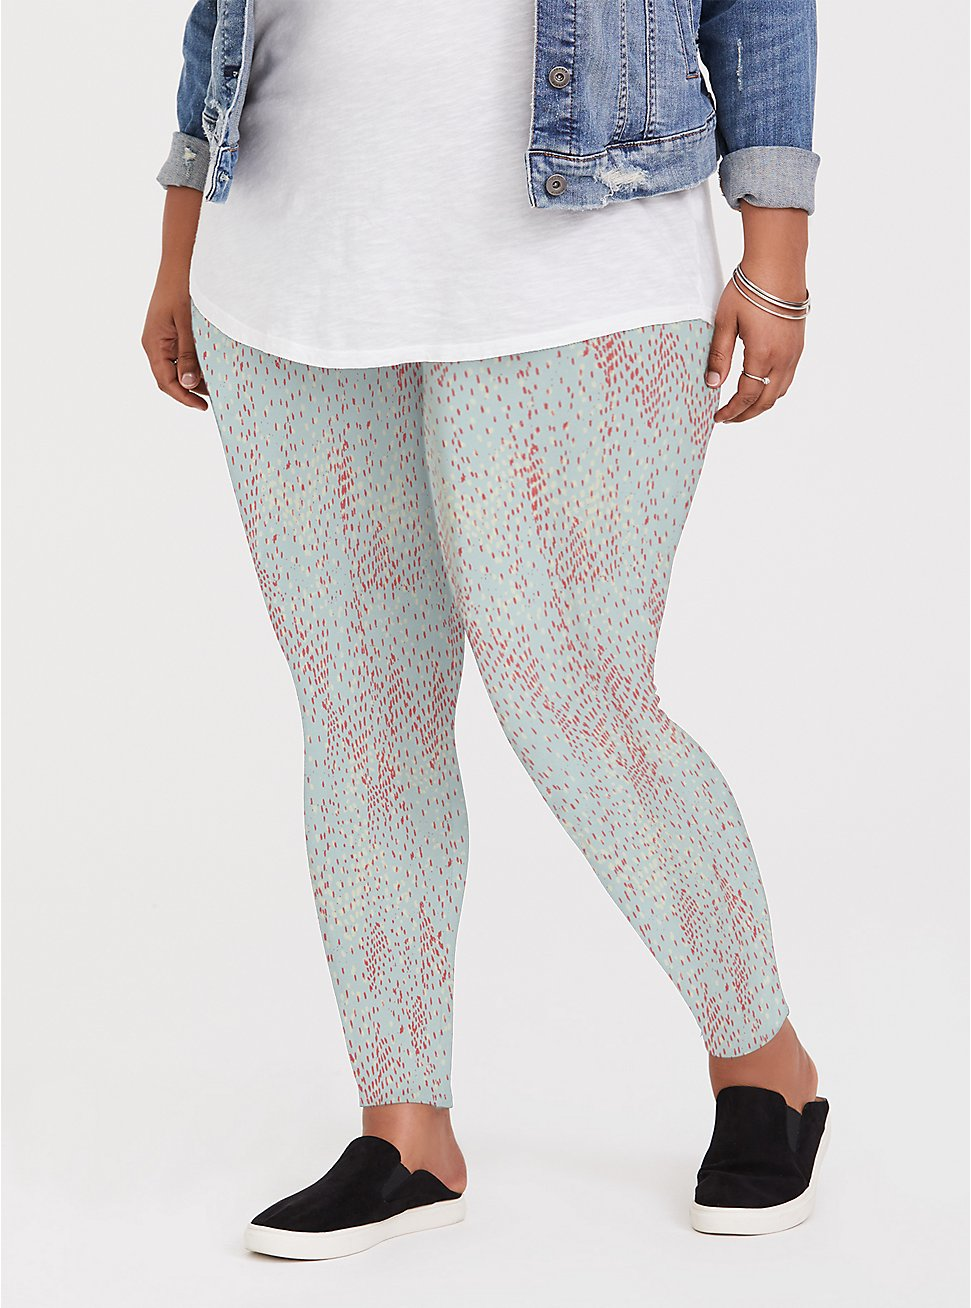 Premium Legging - Multi Dots & Mint Blue , GREY, hi-res